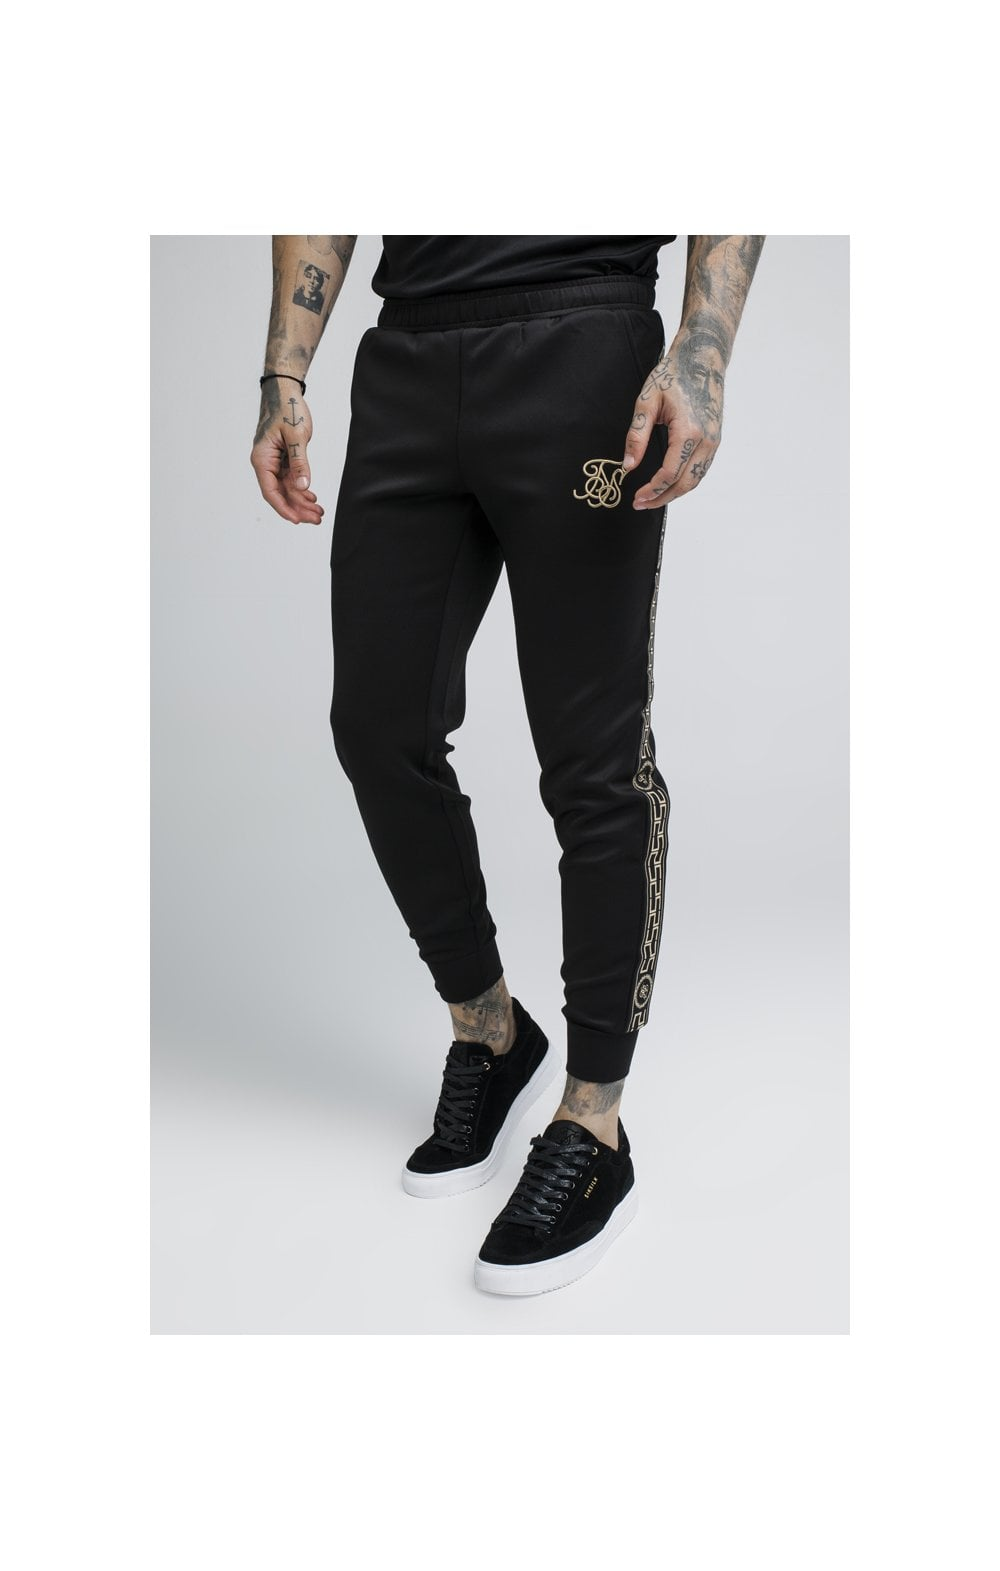 SikSilk Cartel Cropped Cuffed Track Pants - Black